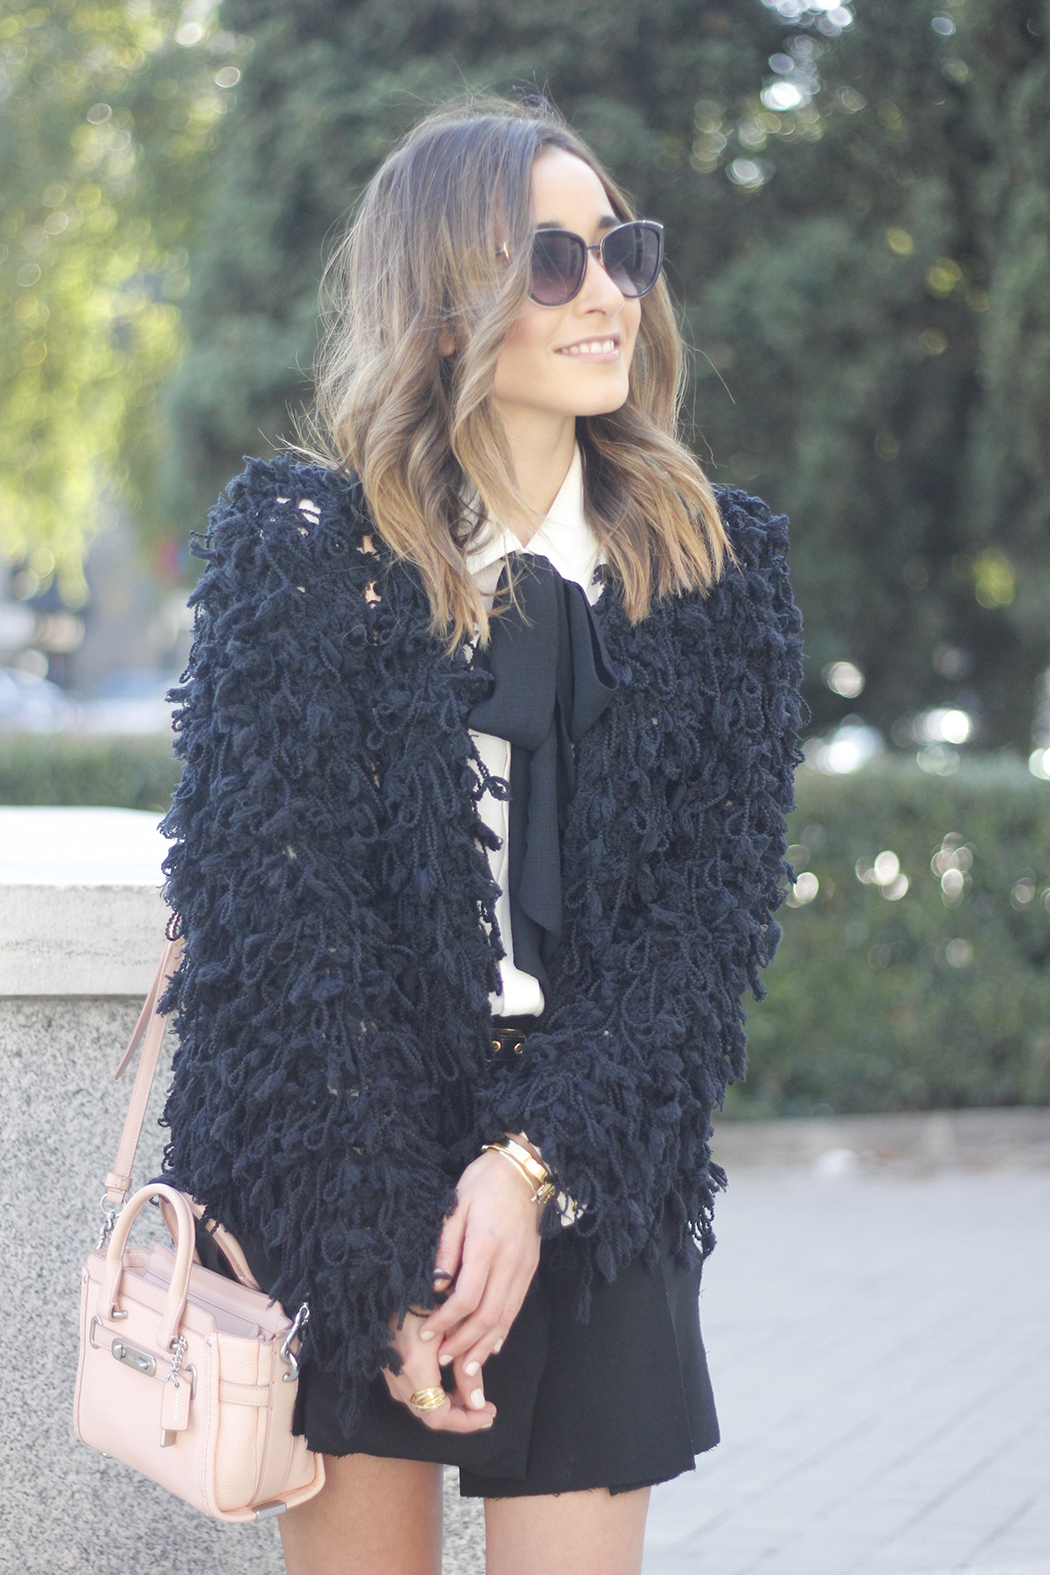 black jacket shirt with black bow coach pink bag heels outfit07